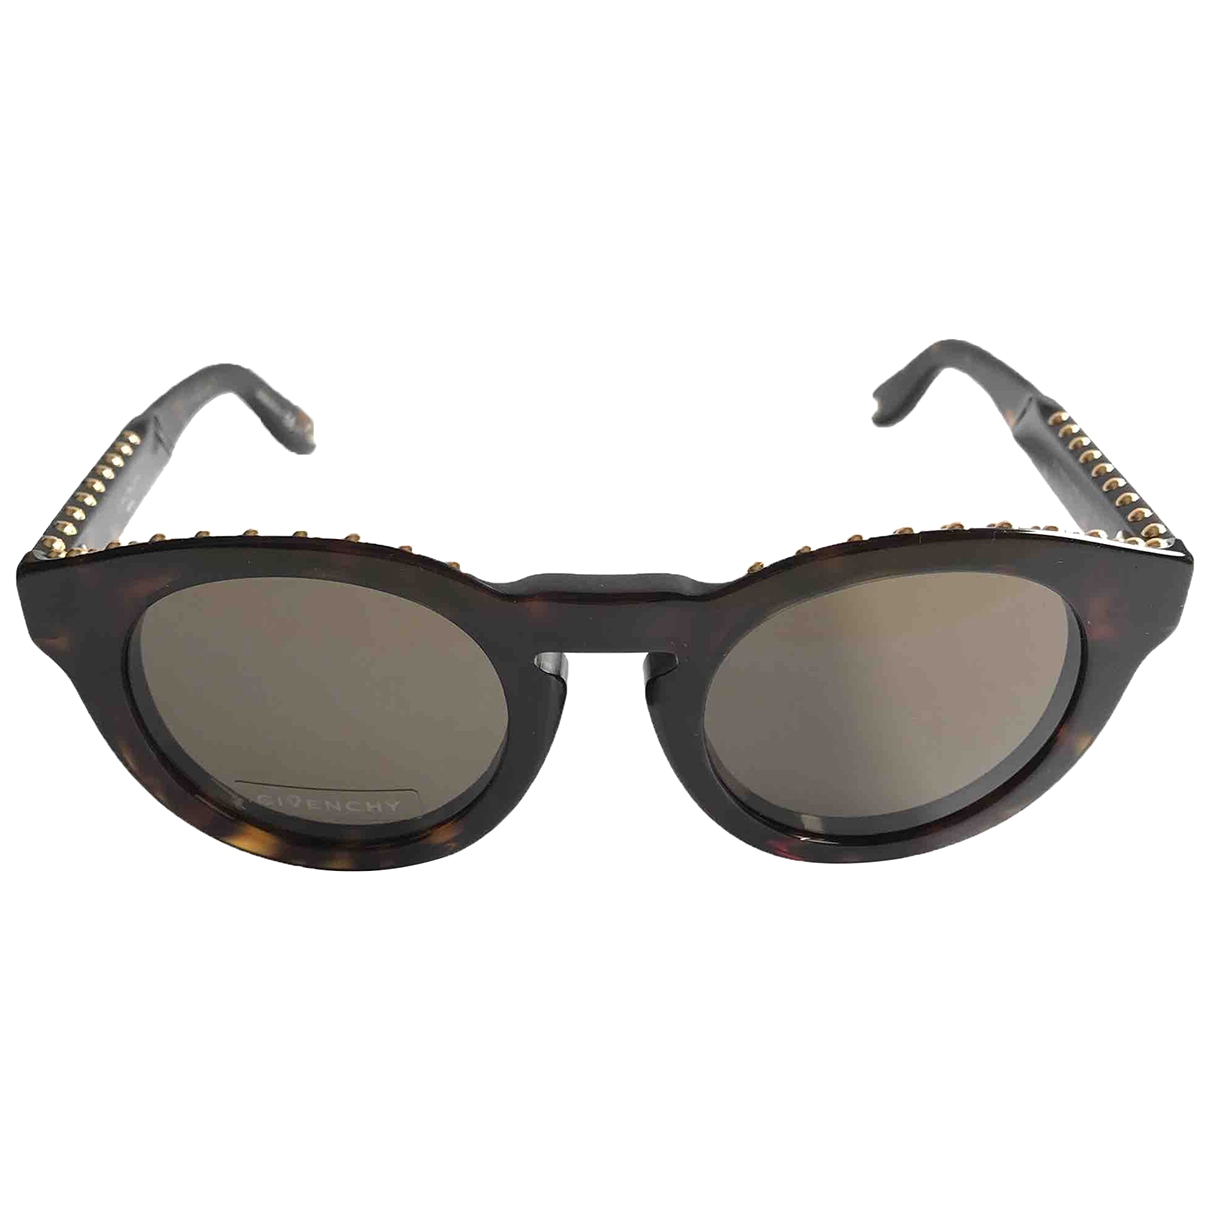 Givenchy \N Brown Sunglasses for Women \N